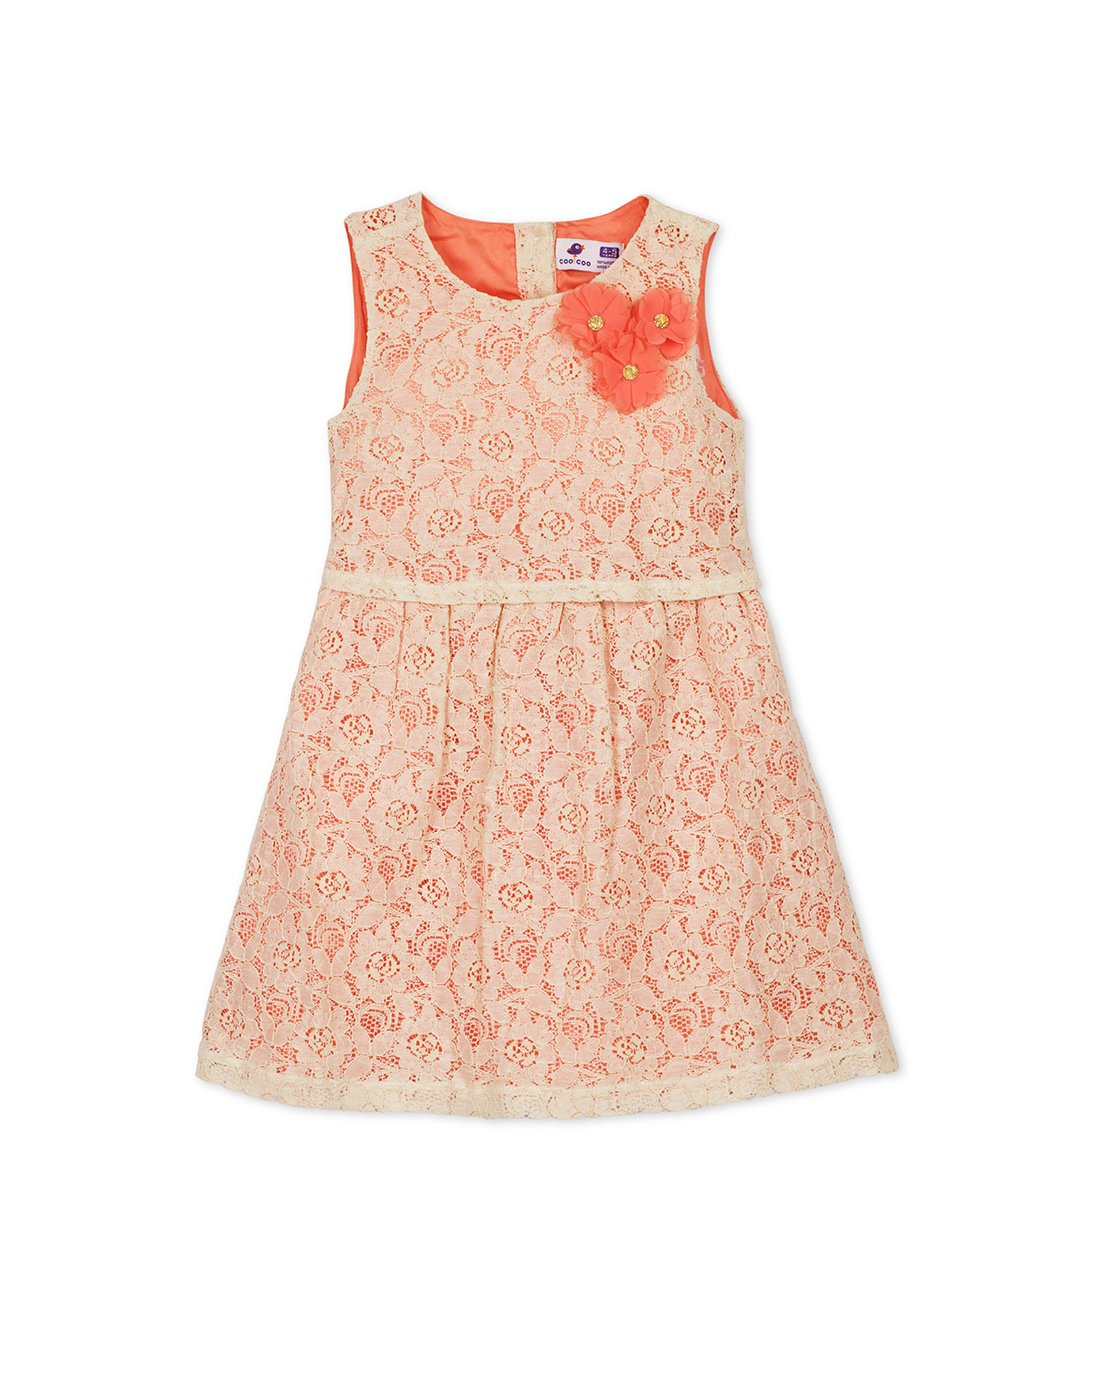 Beige & Coral Embroidered Dress